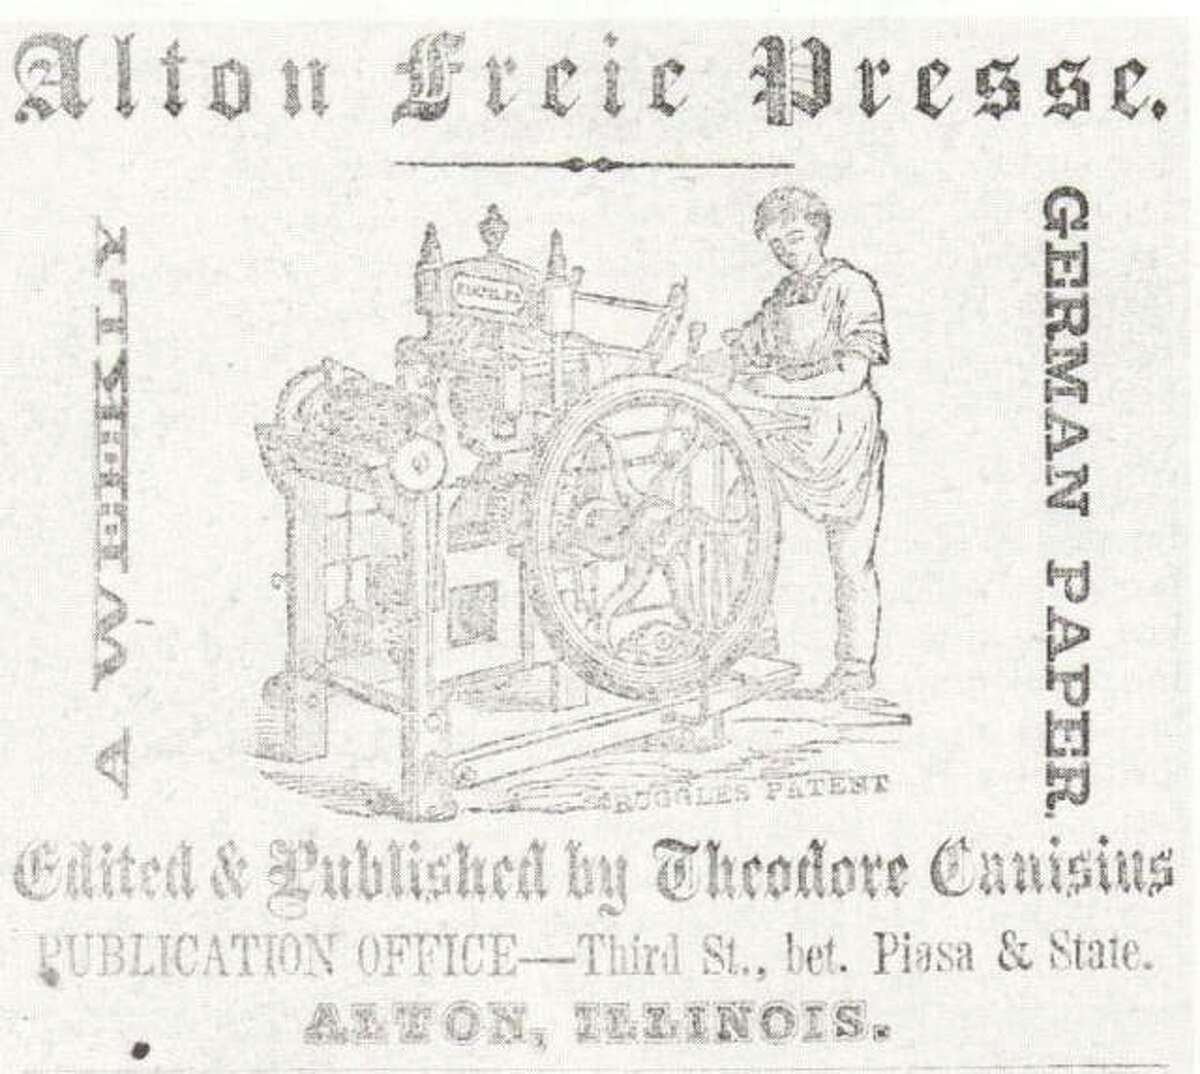 This Alton Freie Presse ad appeared in the 1858 Alton City Directory. The advertisement was for the German newspaper which was published weekly.